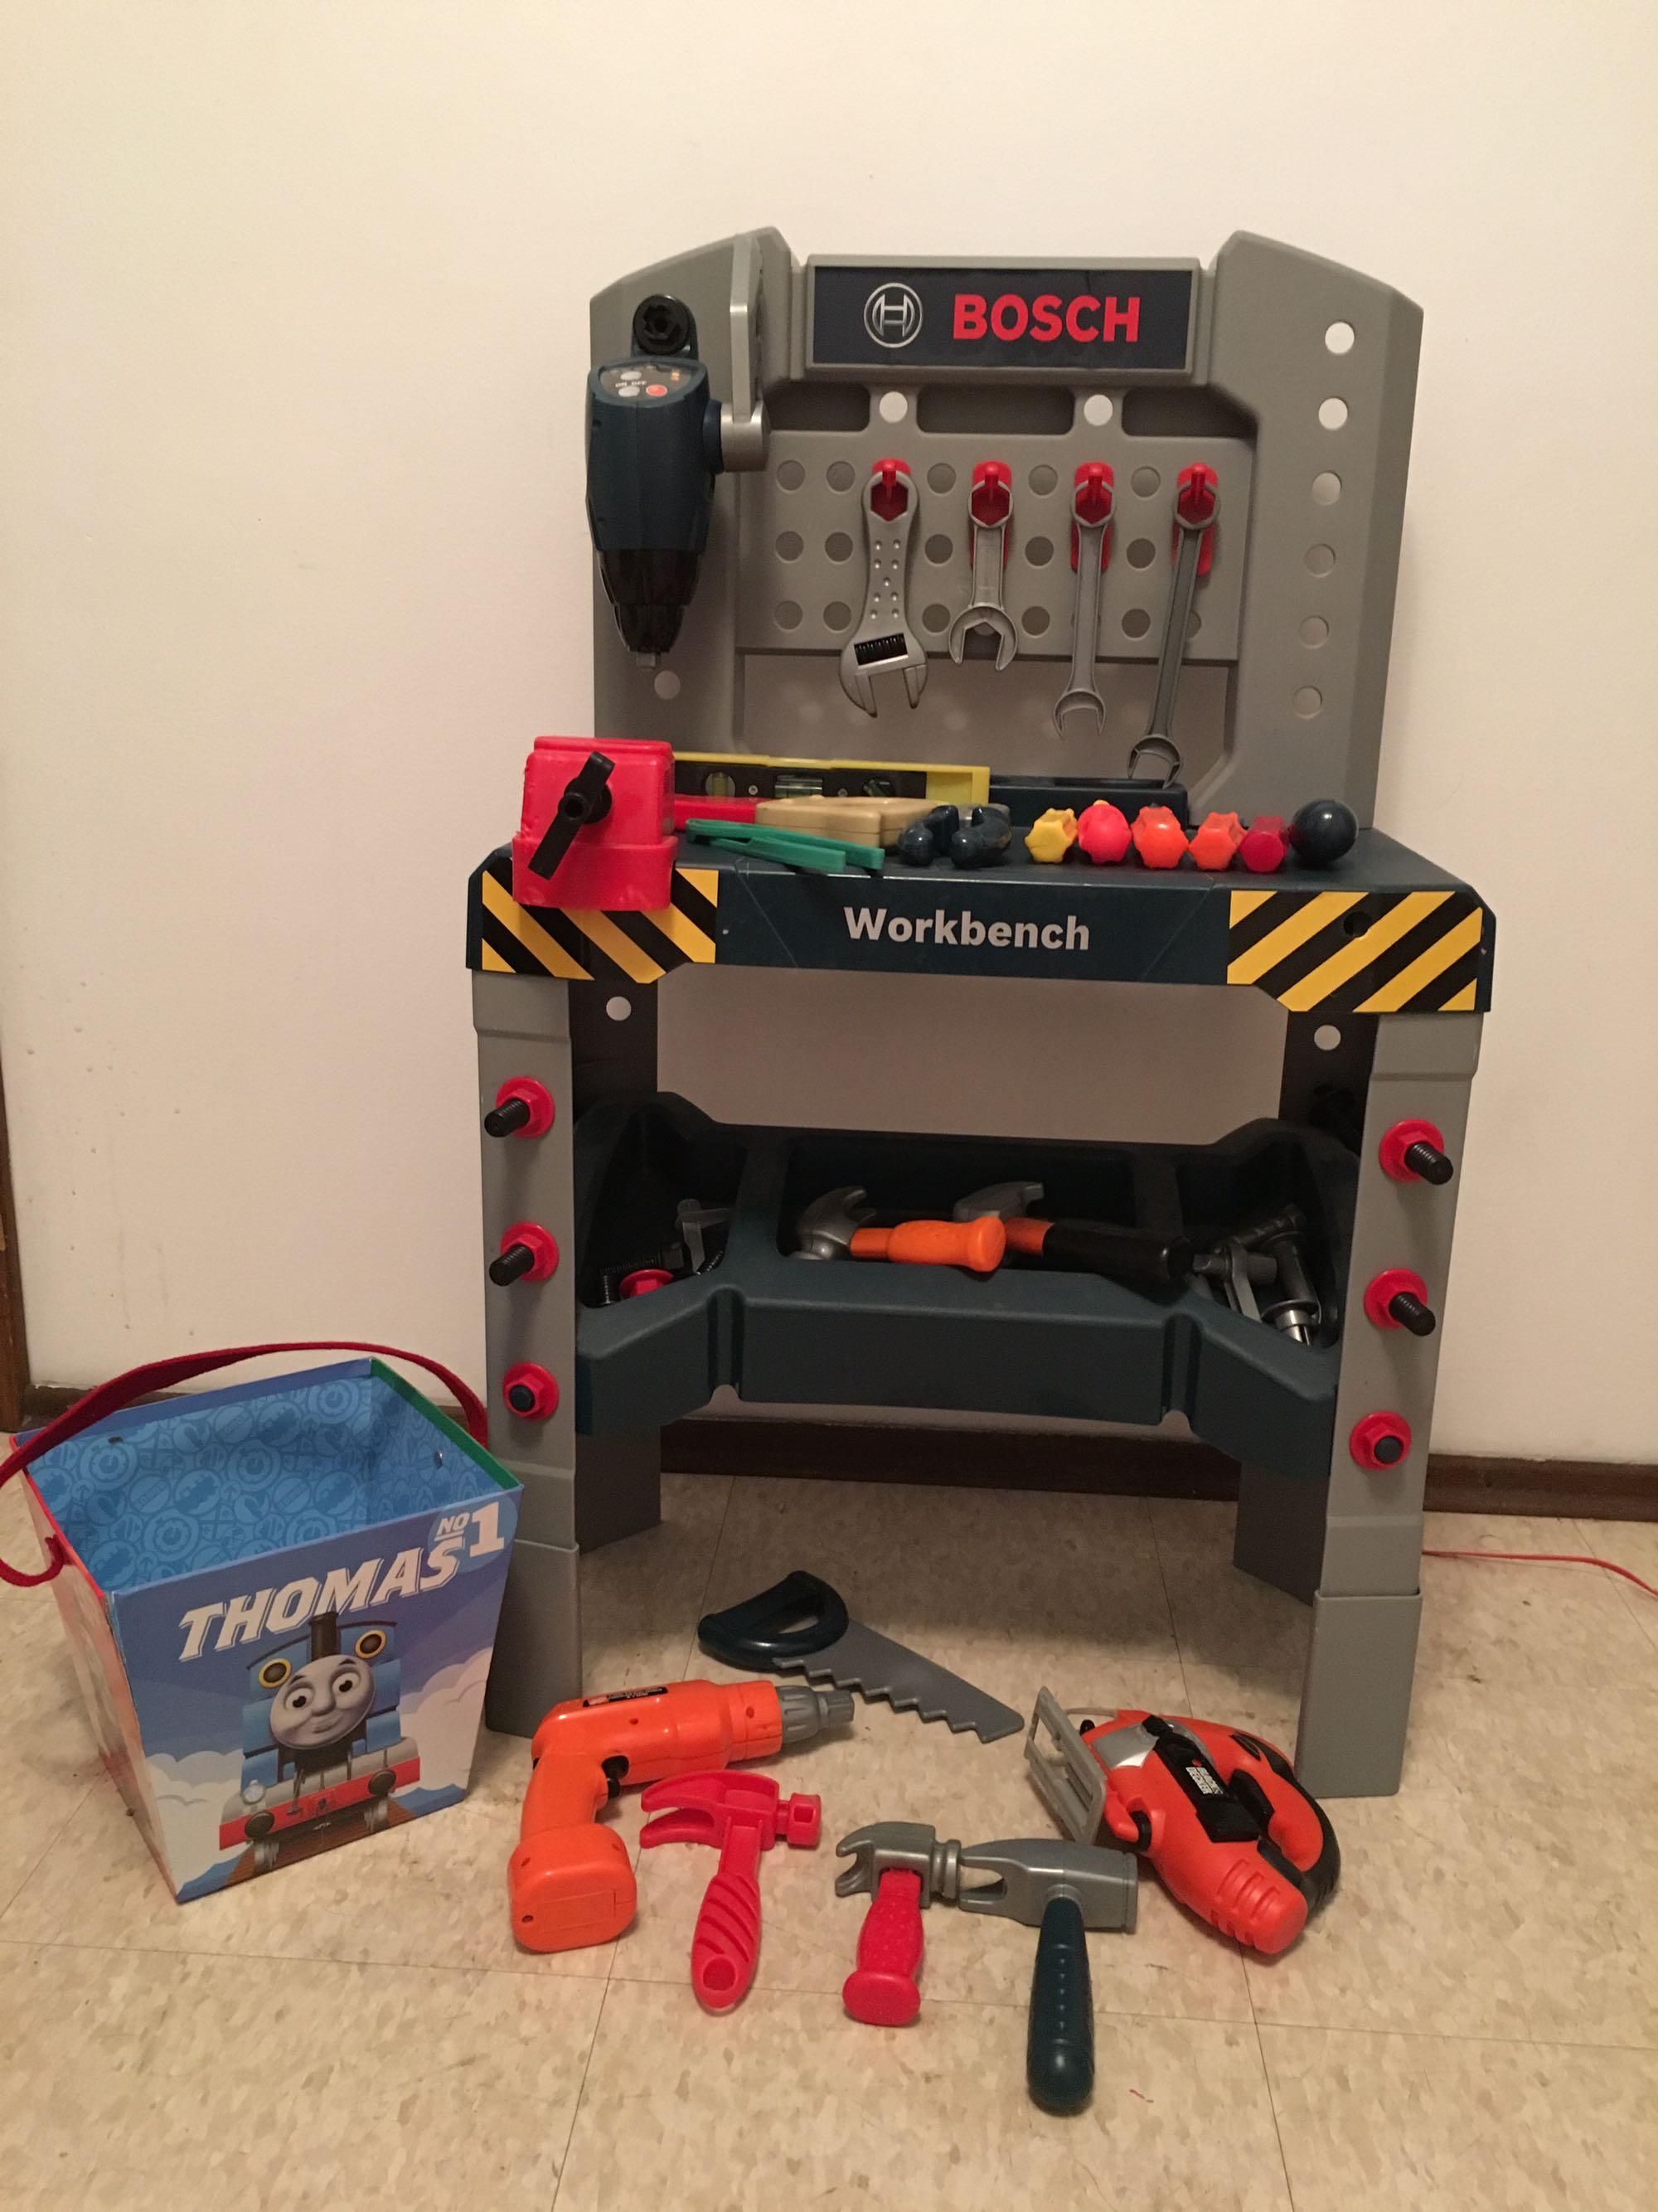 Bosch work bench and tools